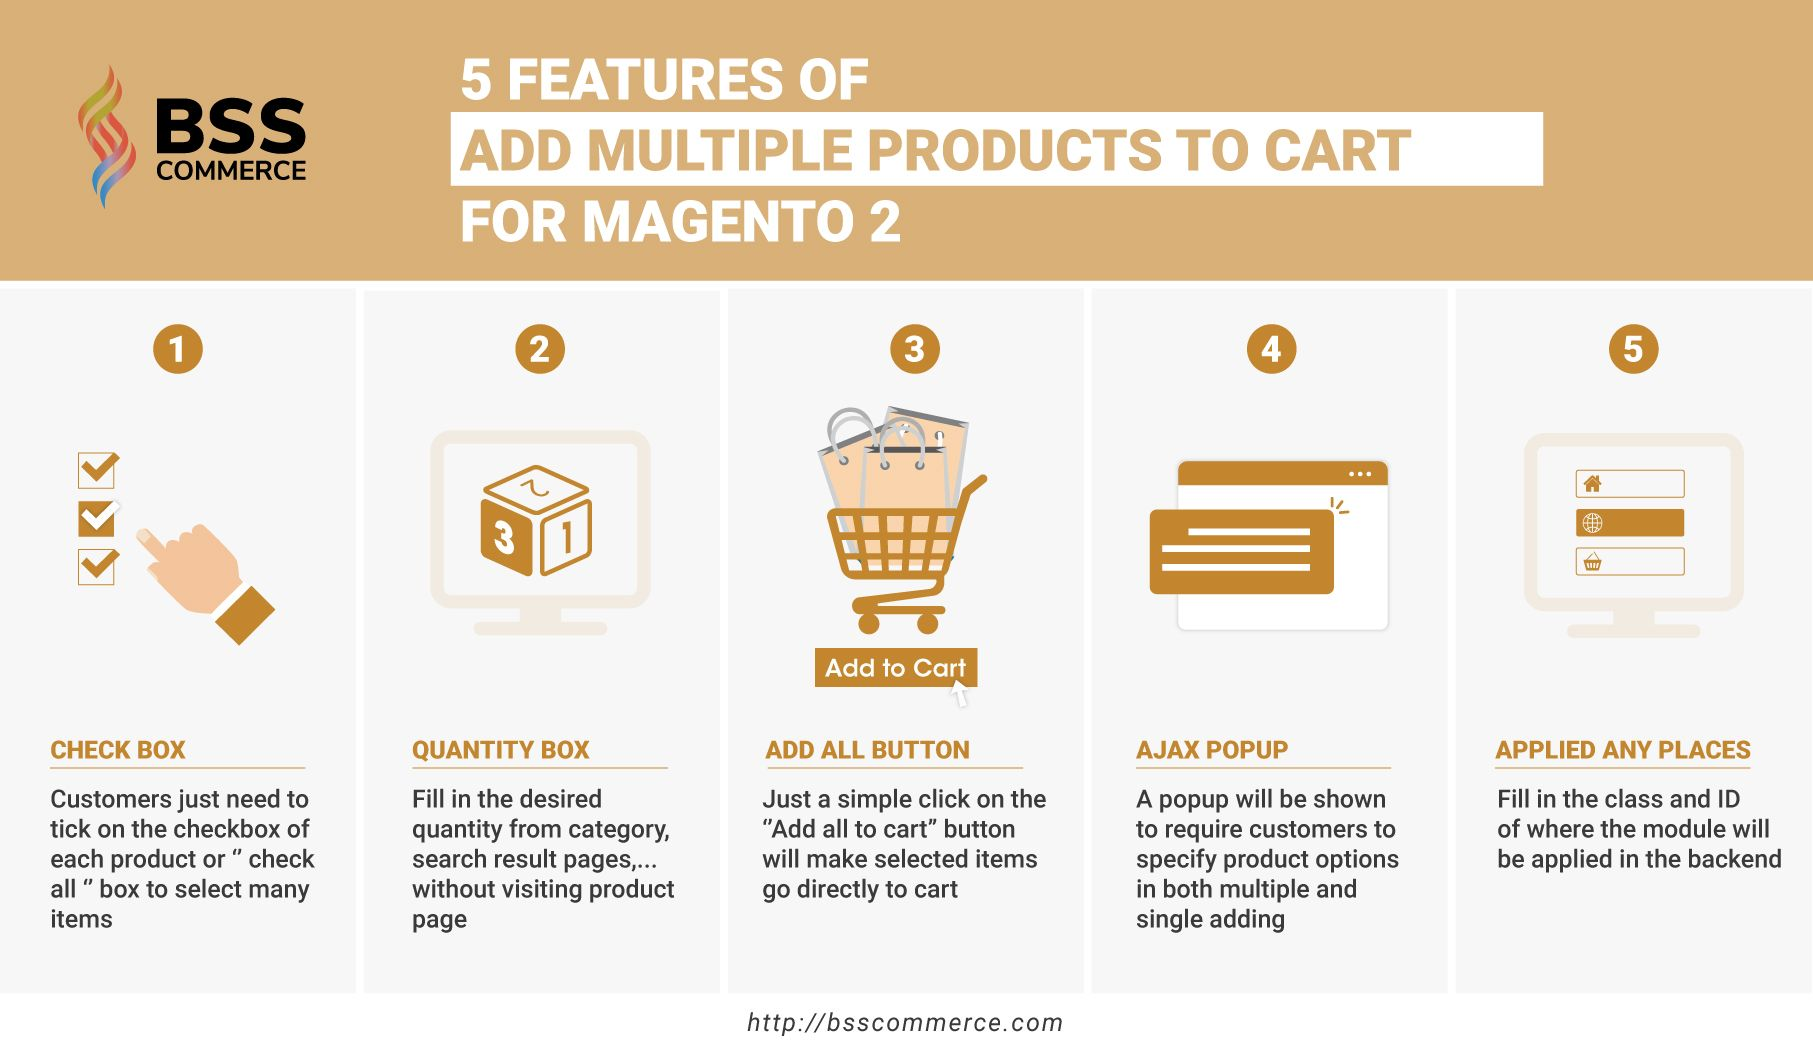 5 Features of Magento 2 Add Multiple Products To Cart